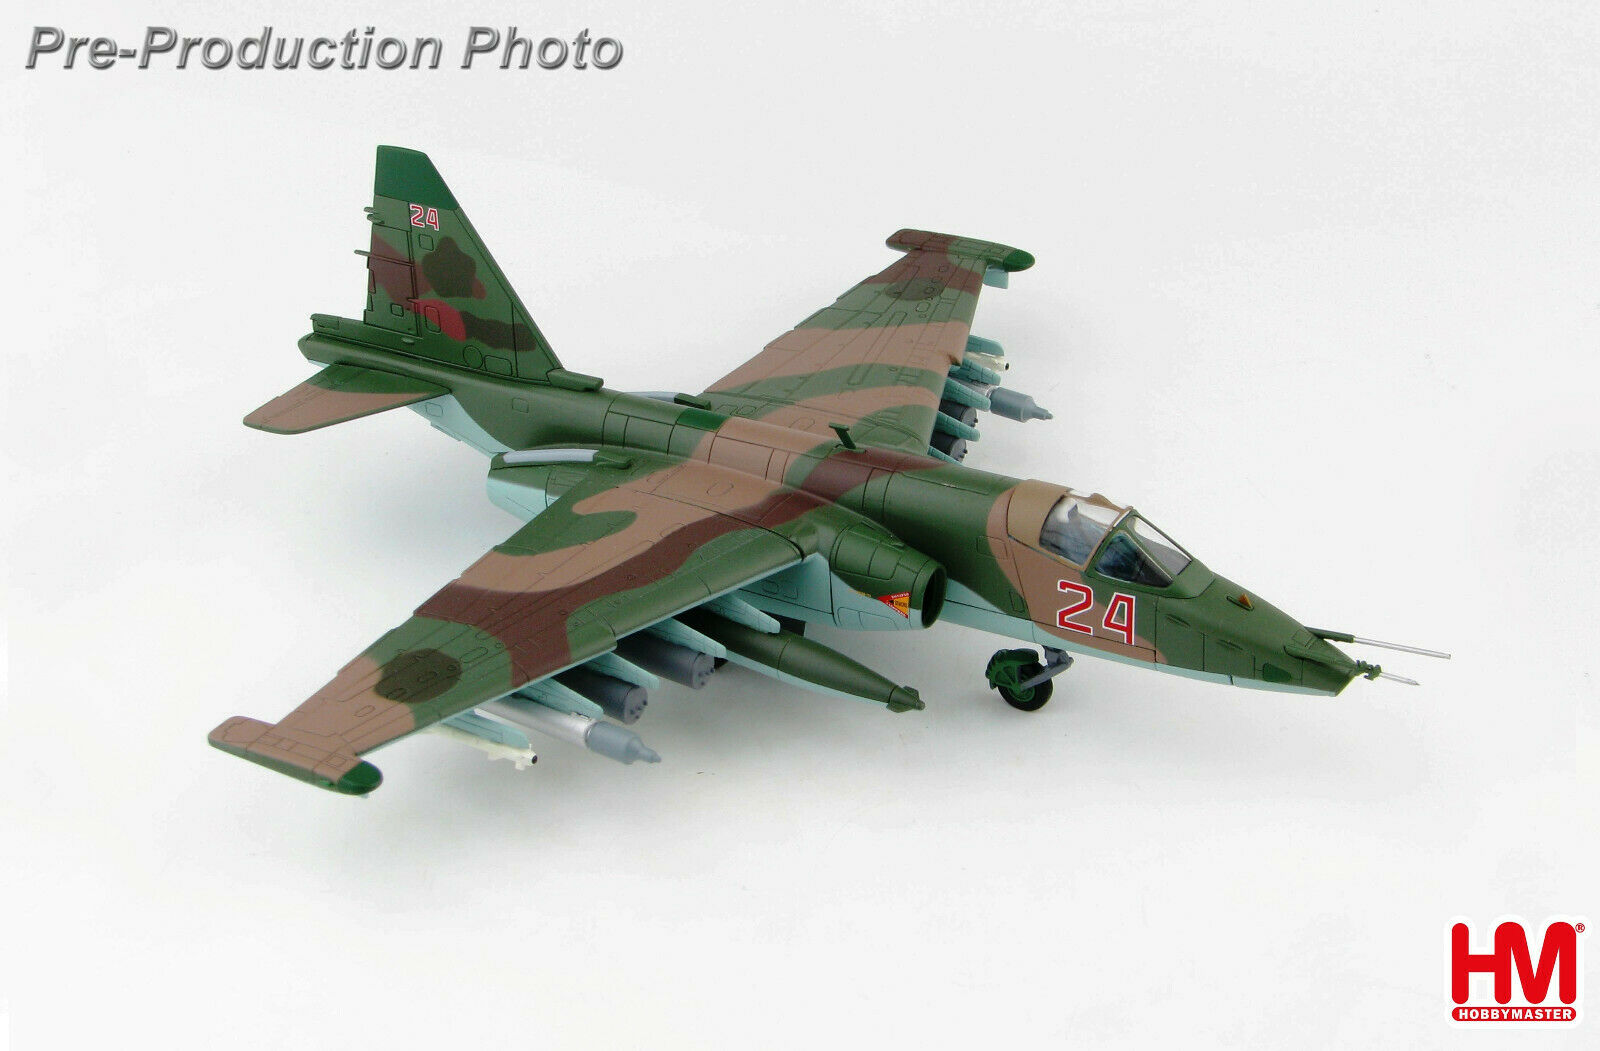 Hobby Master HA6101 172 SU25 Sm Frogfoot Rosso 24 Russo Air Force Latakia